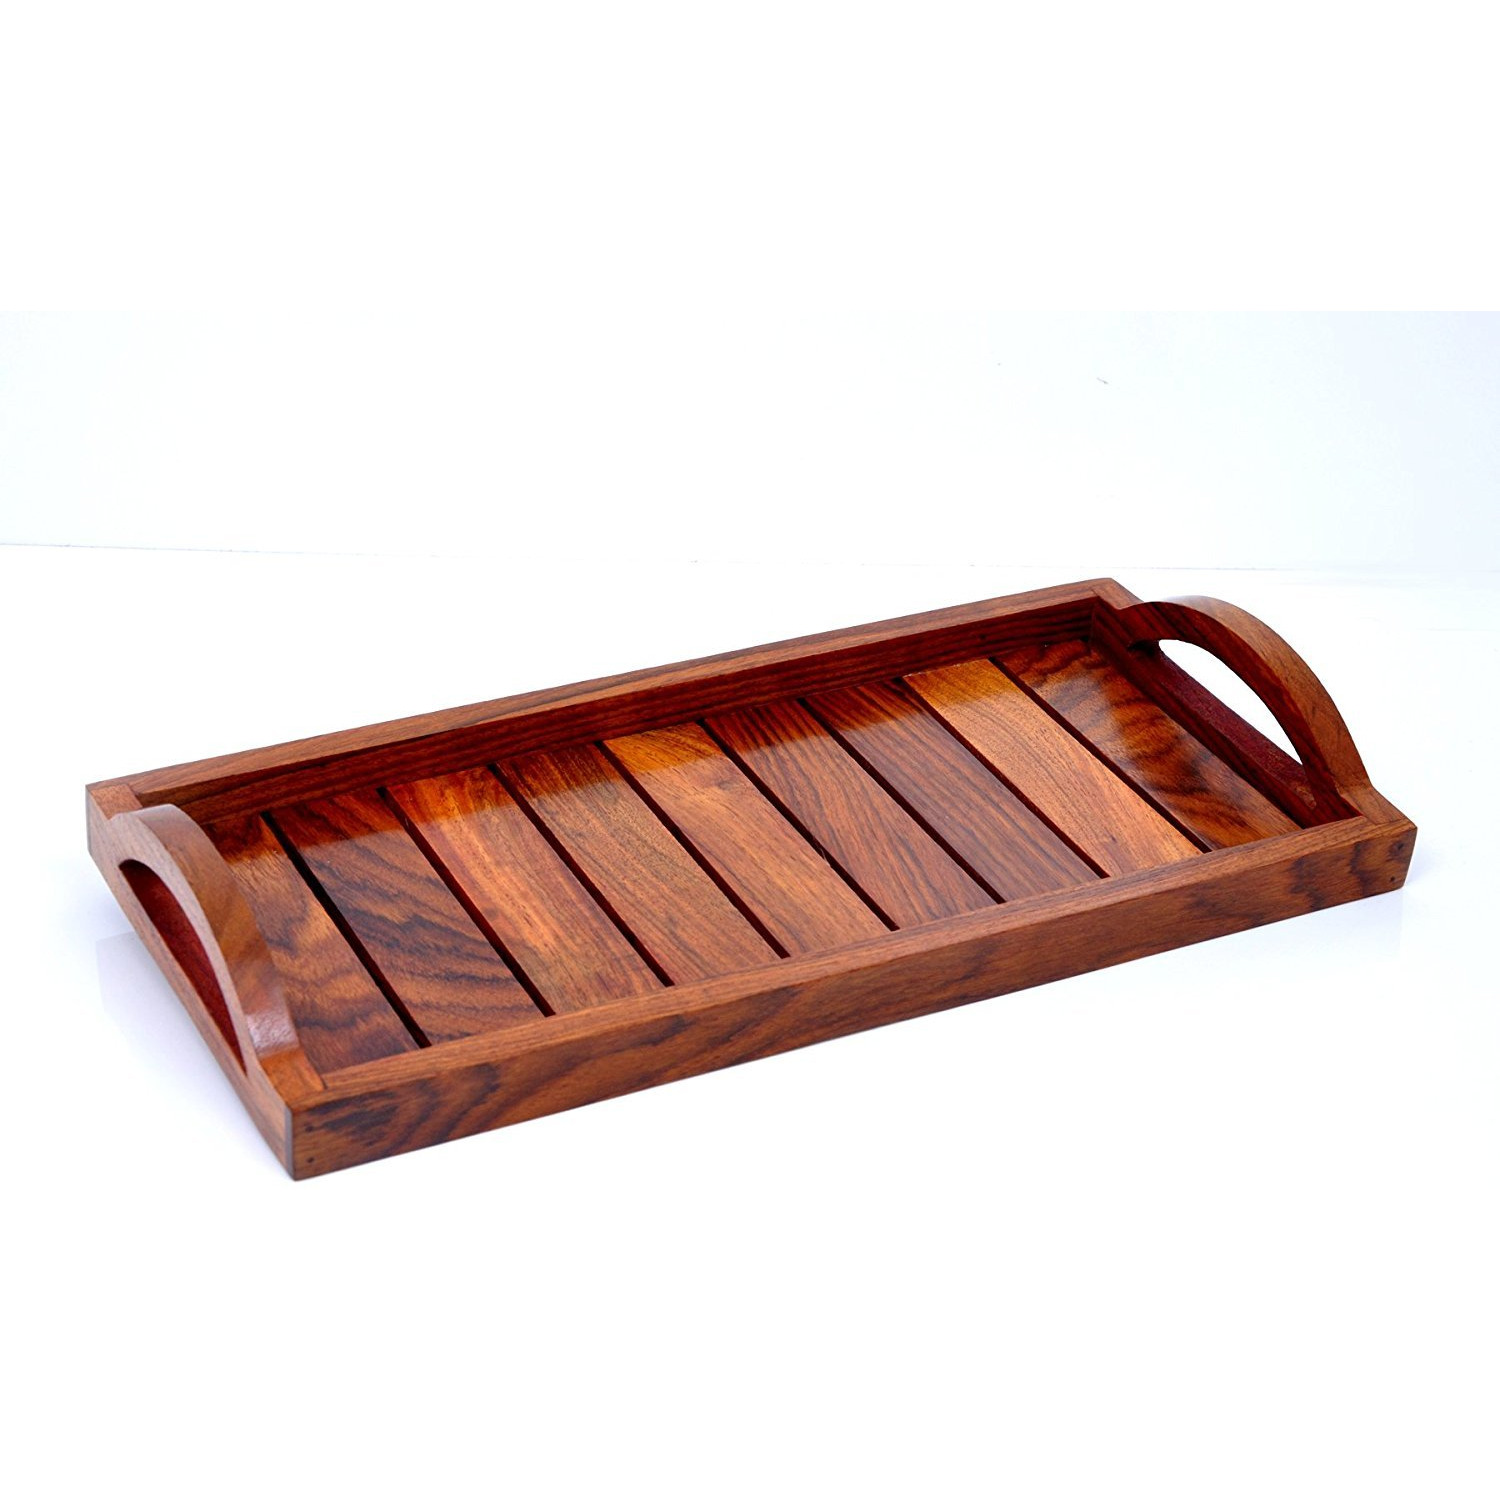 Winmaarc Handmade Wooden Serving Tray for Dining Tableware, Table D??cor, Kitchen Serveware Accessory, Breakfast Coffee Tray, Butler Serving Trays 13x6 inch